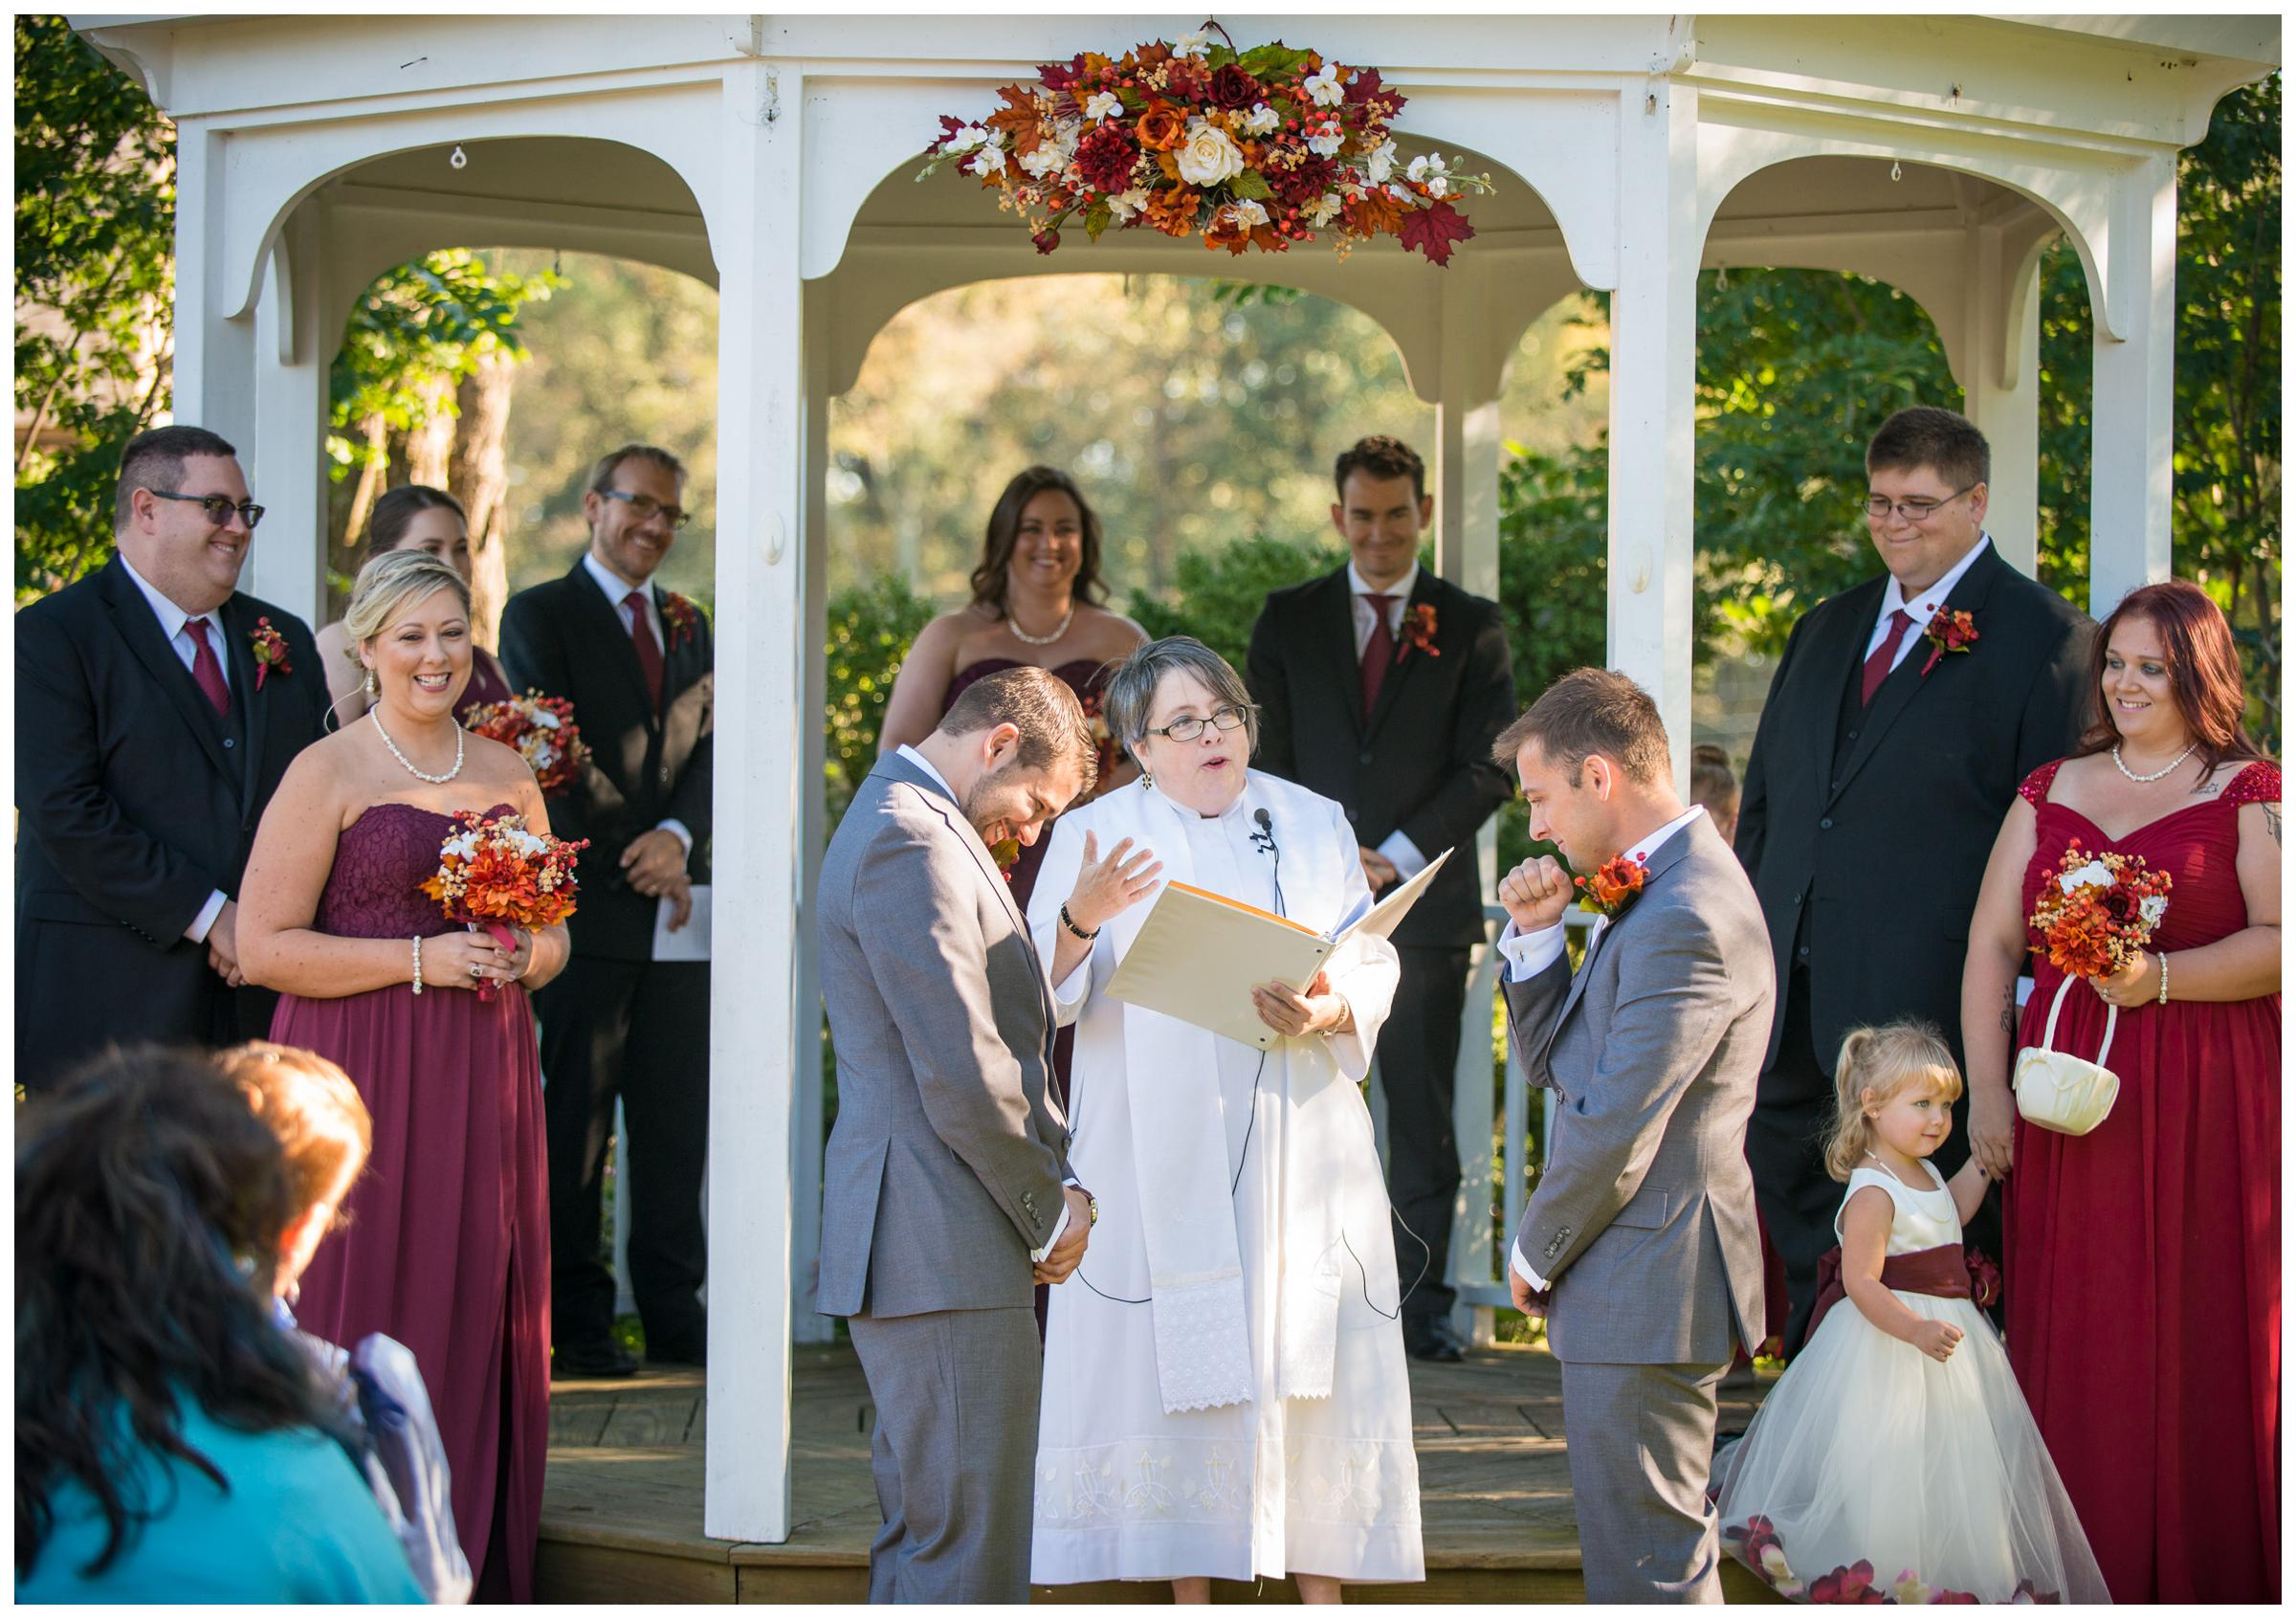 same-sex wedding ceremony at Woodlawn Manor in Maryland